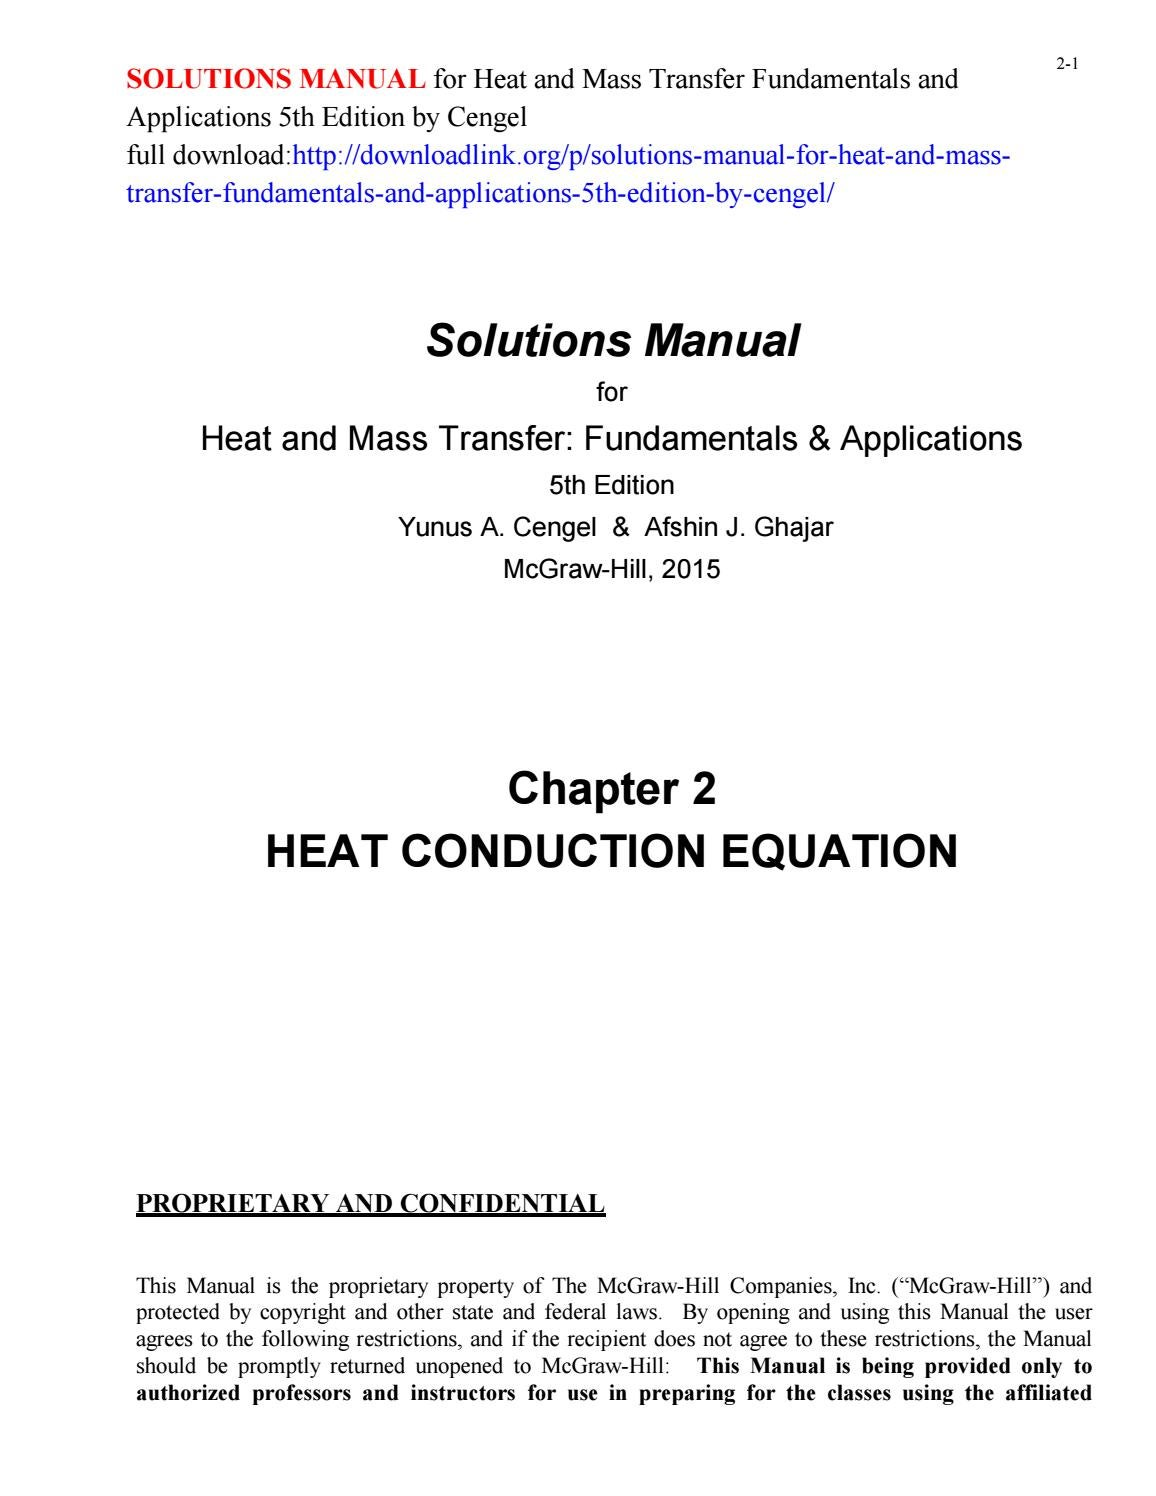 Solutions manual for heat and mass transfer fundamentals and applications  5th edition by cengel by Chapters999 - issuu